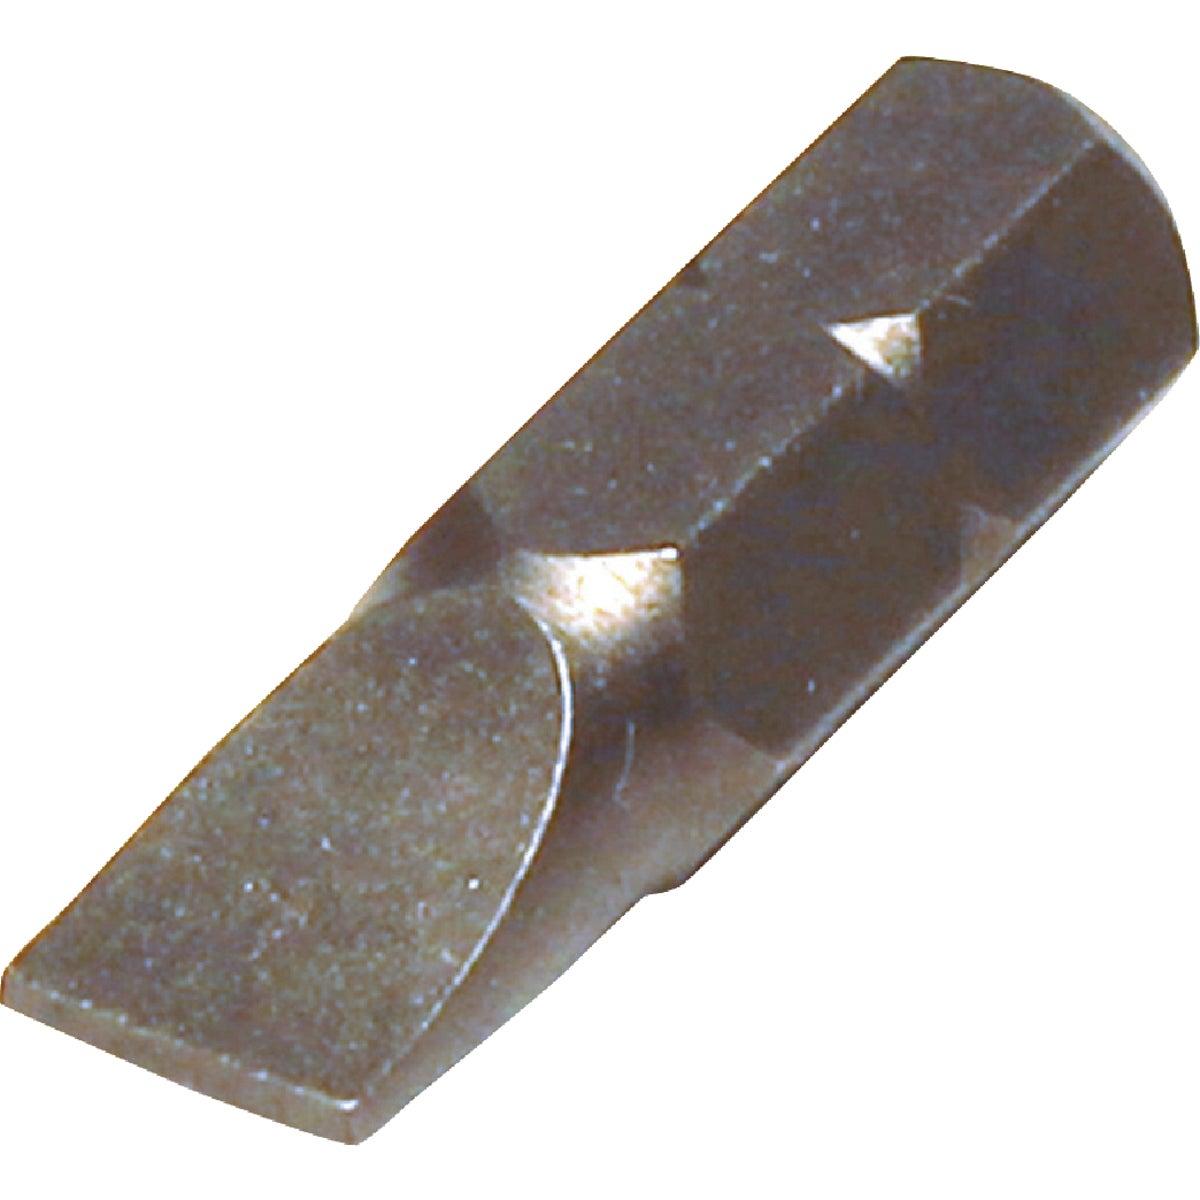 "#6-8 1""SLOTED INSERT BIT - 306272DB by Mibro/gs"